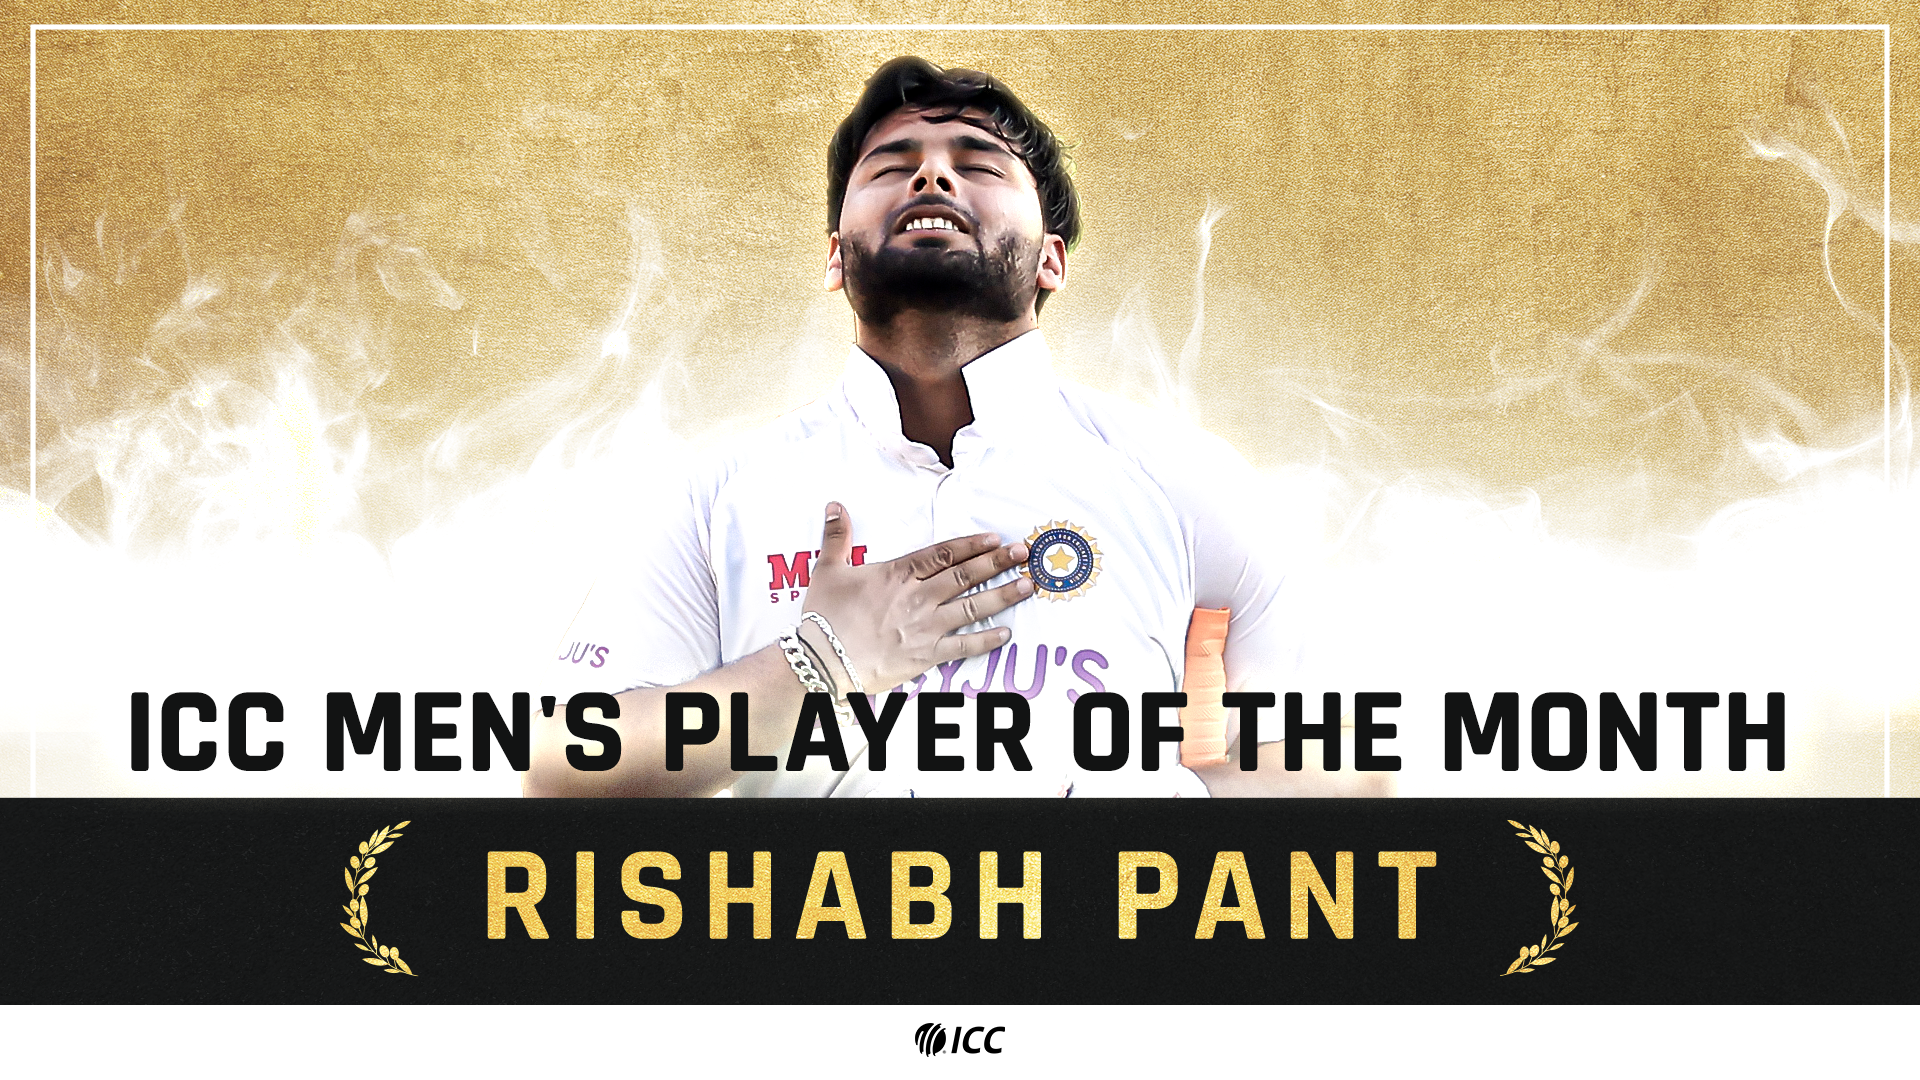 ICC Men's Player of the Month for January 2021: Rishabh Pant - International Cricket Council